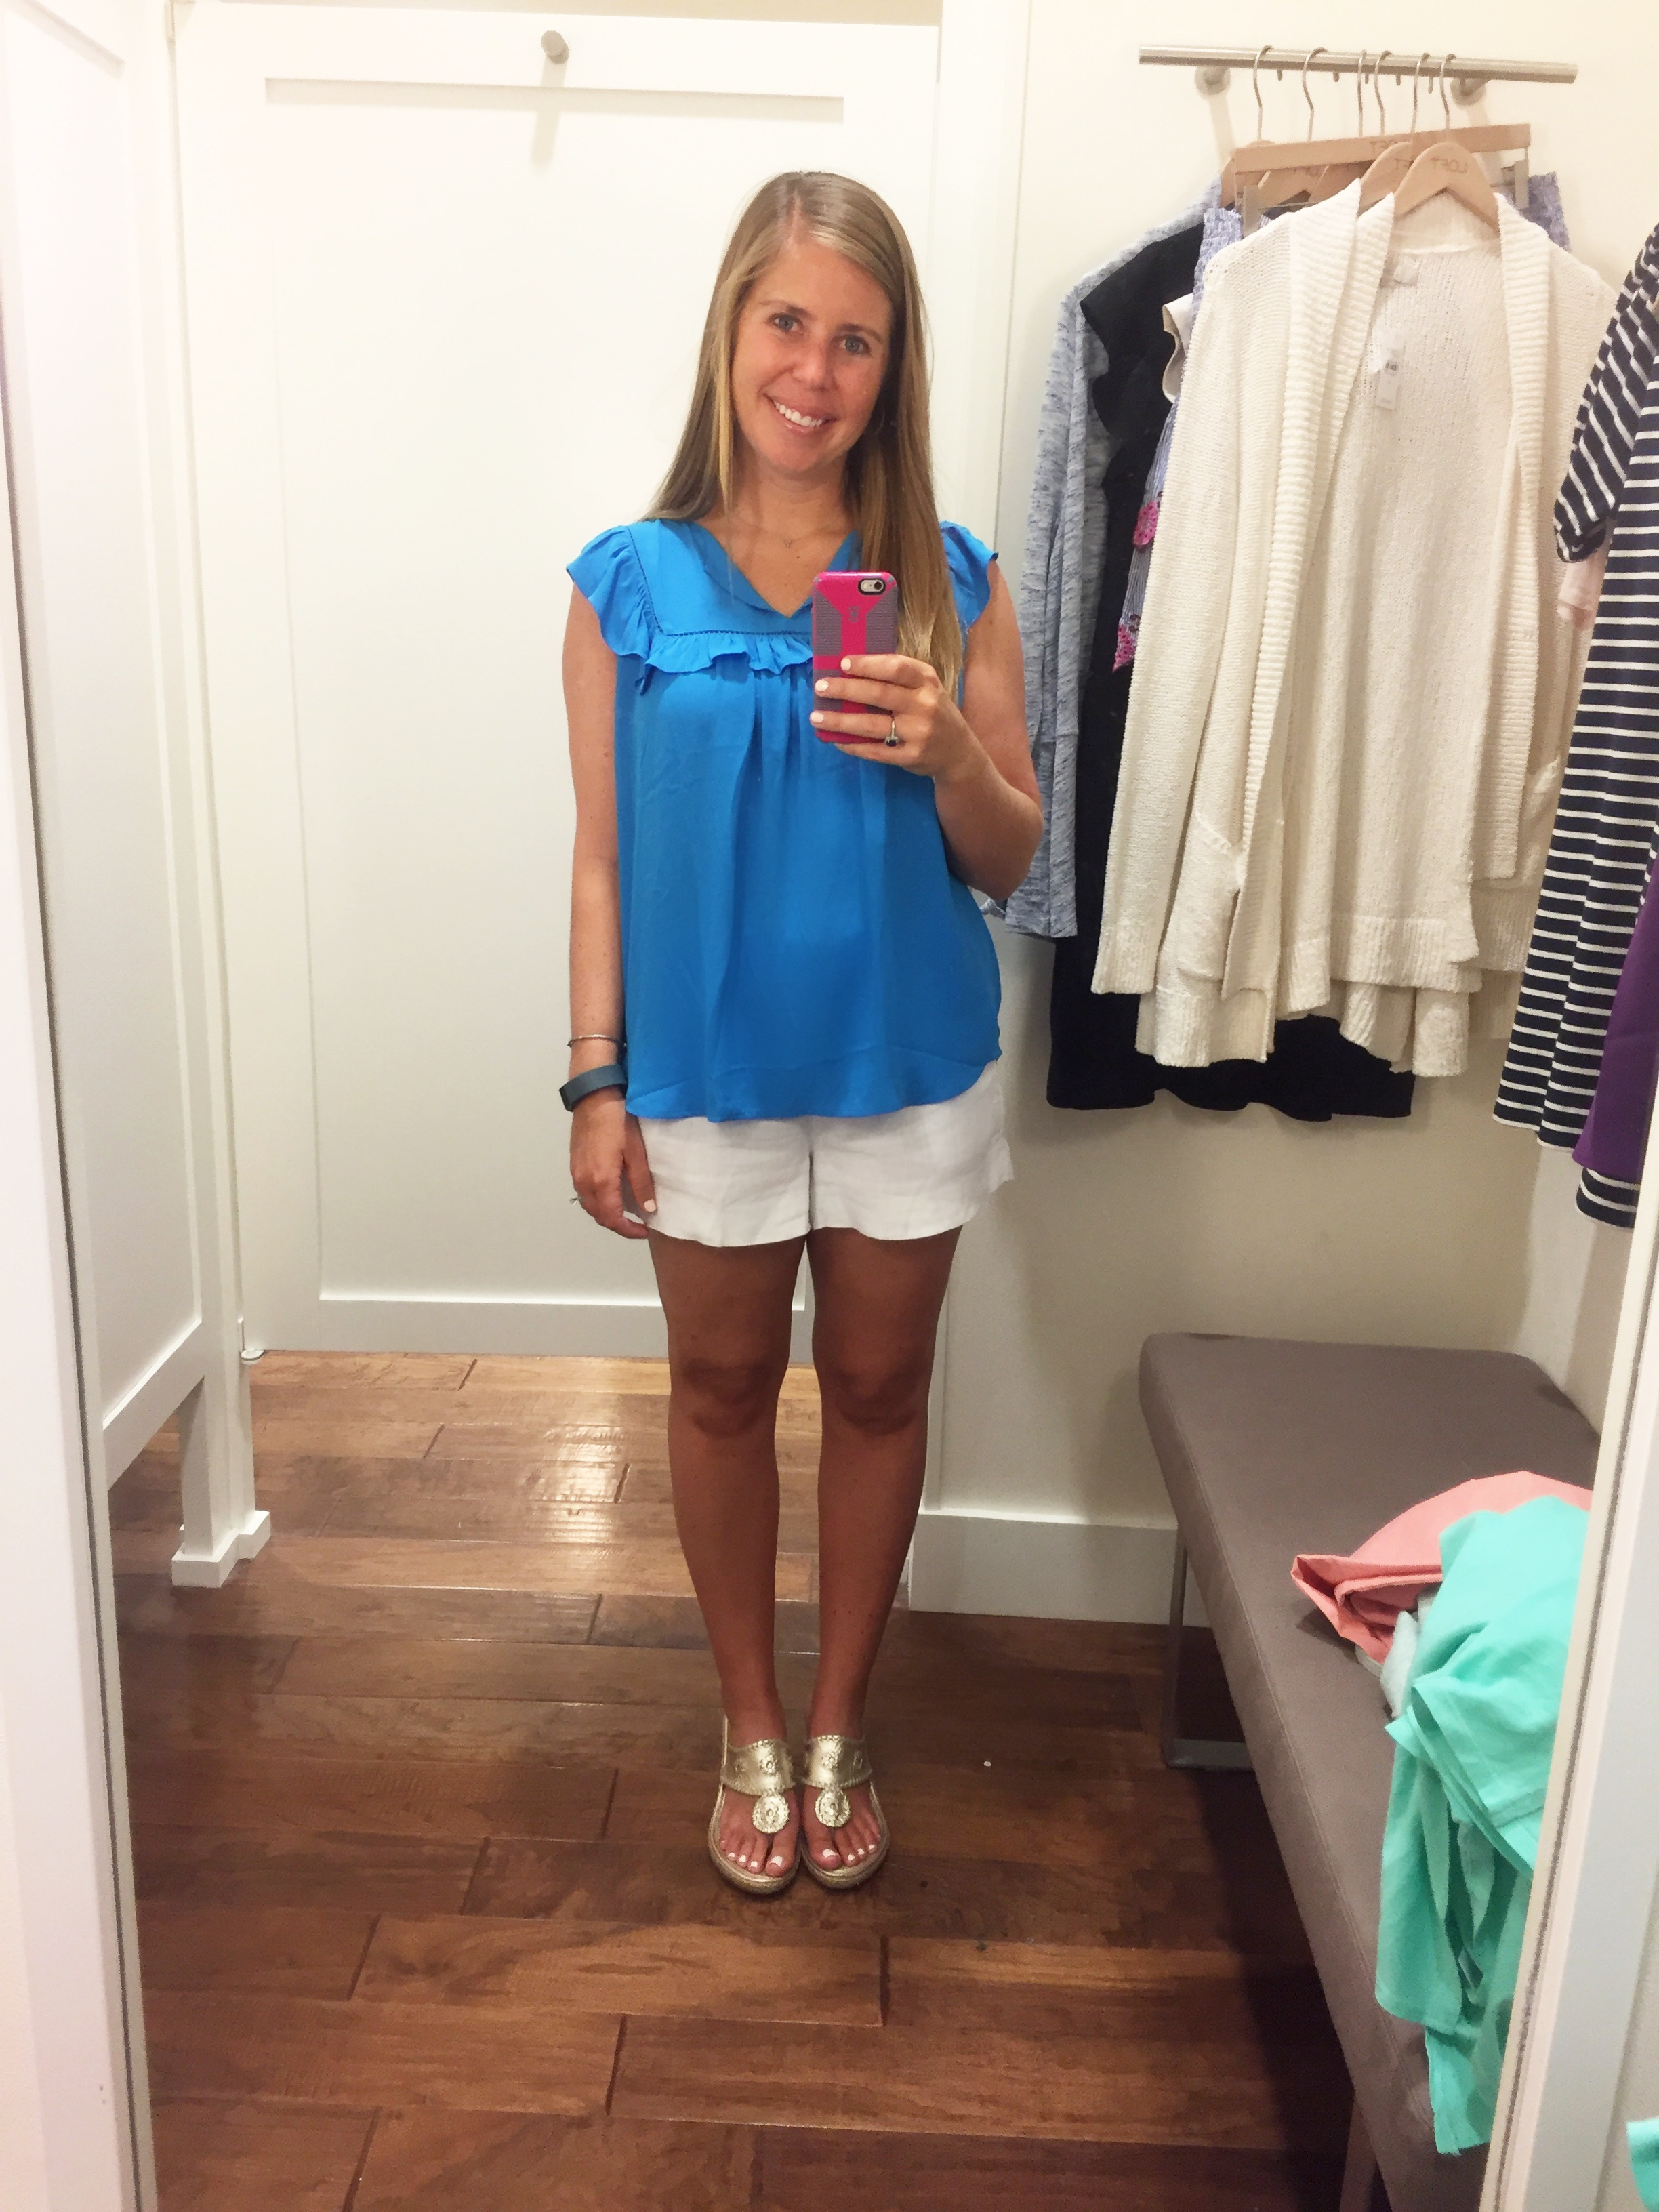 Lacy Ruffle Top (marked down from $44.50 to $19.99)